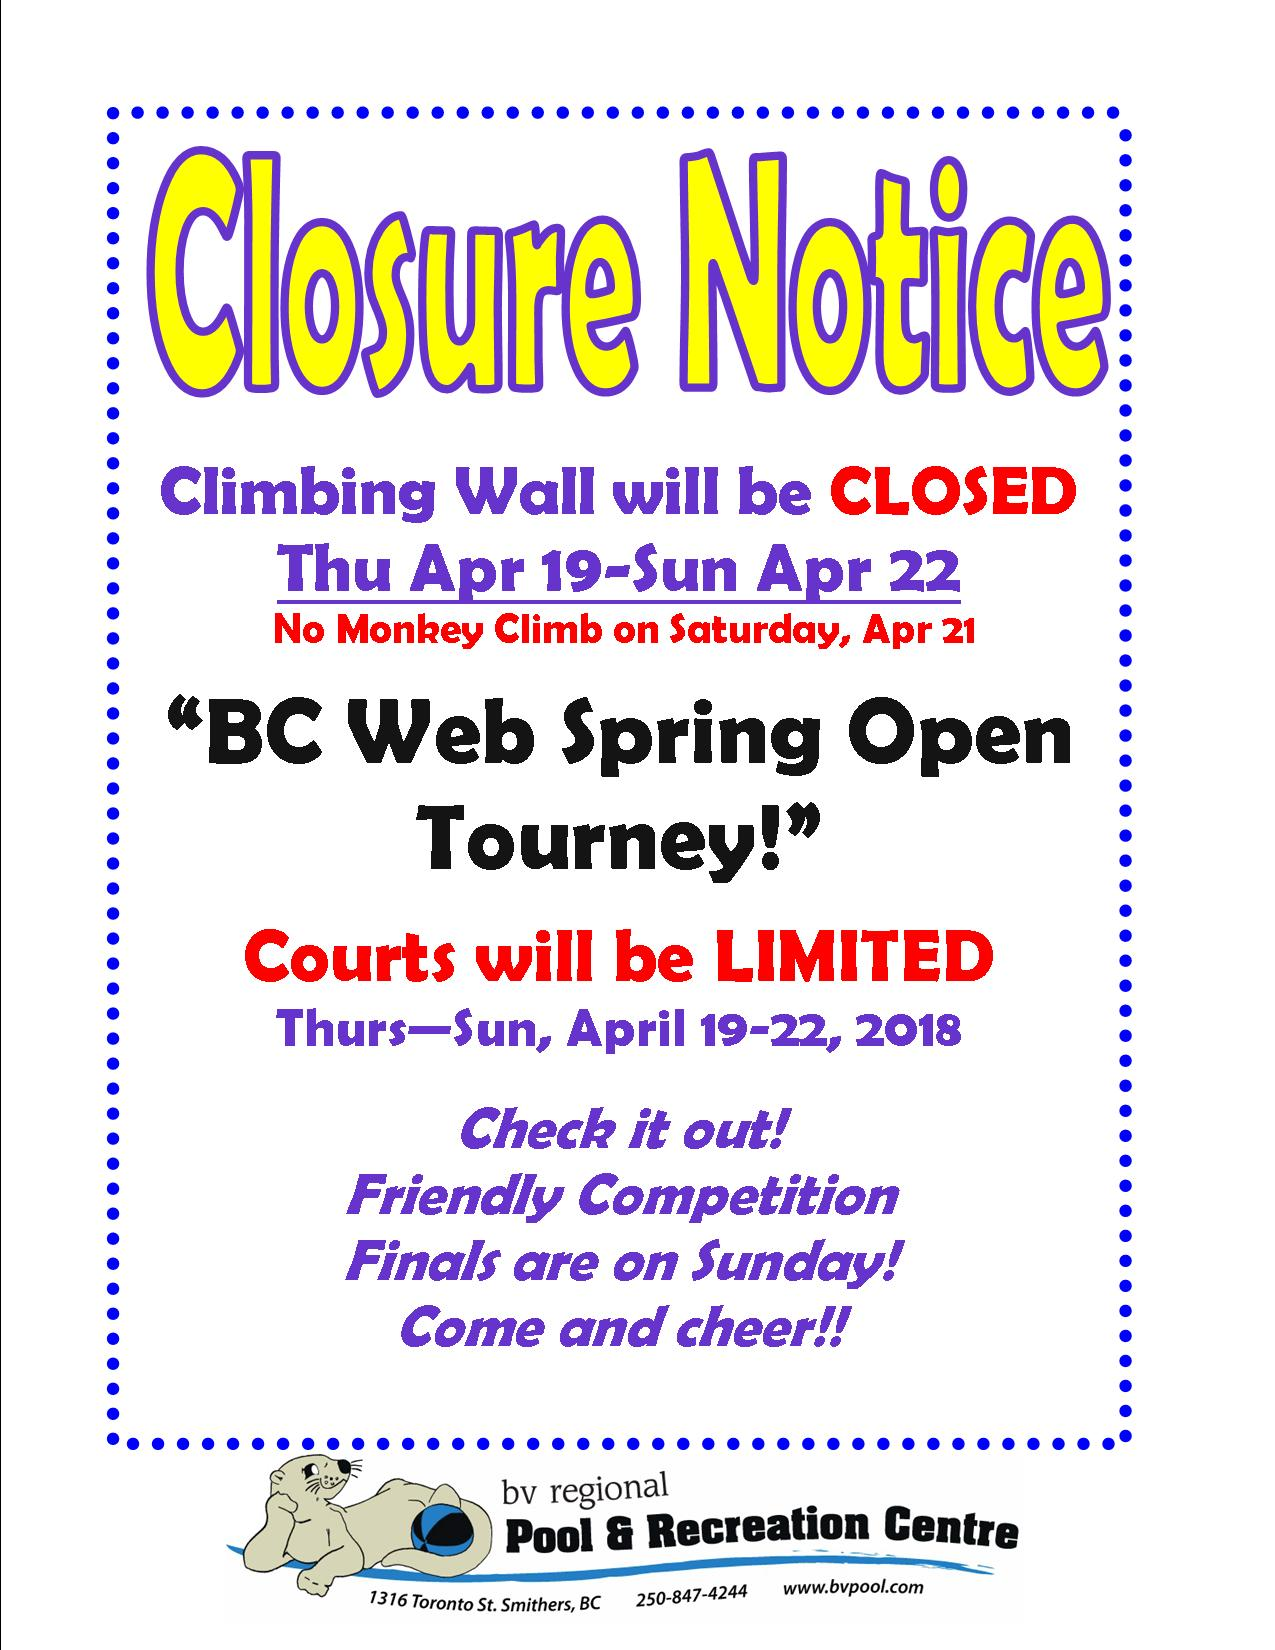 Climbing Wall closed for squash tourney